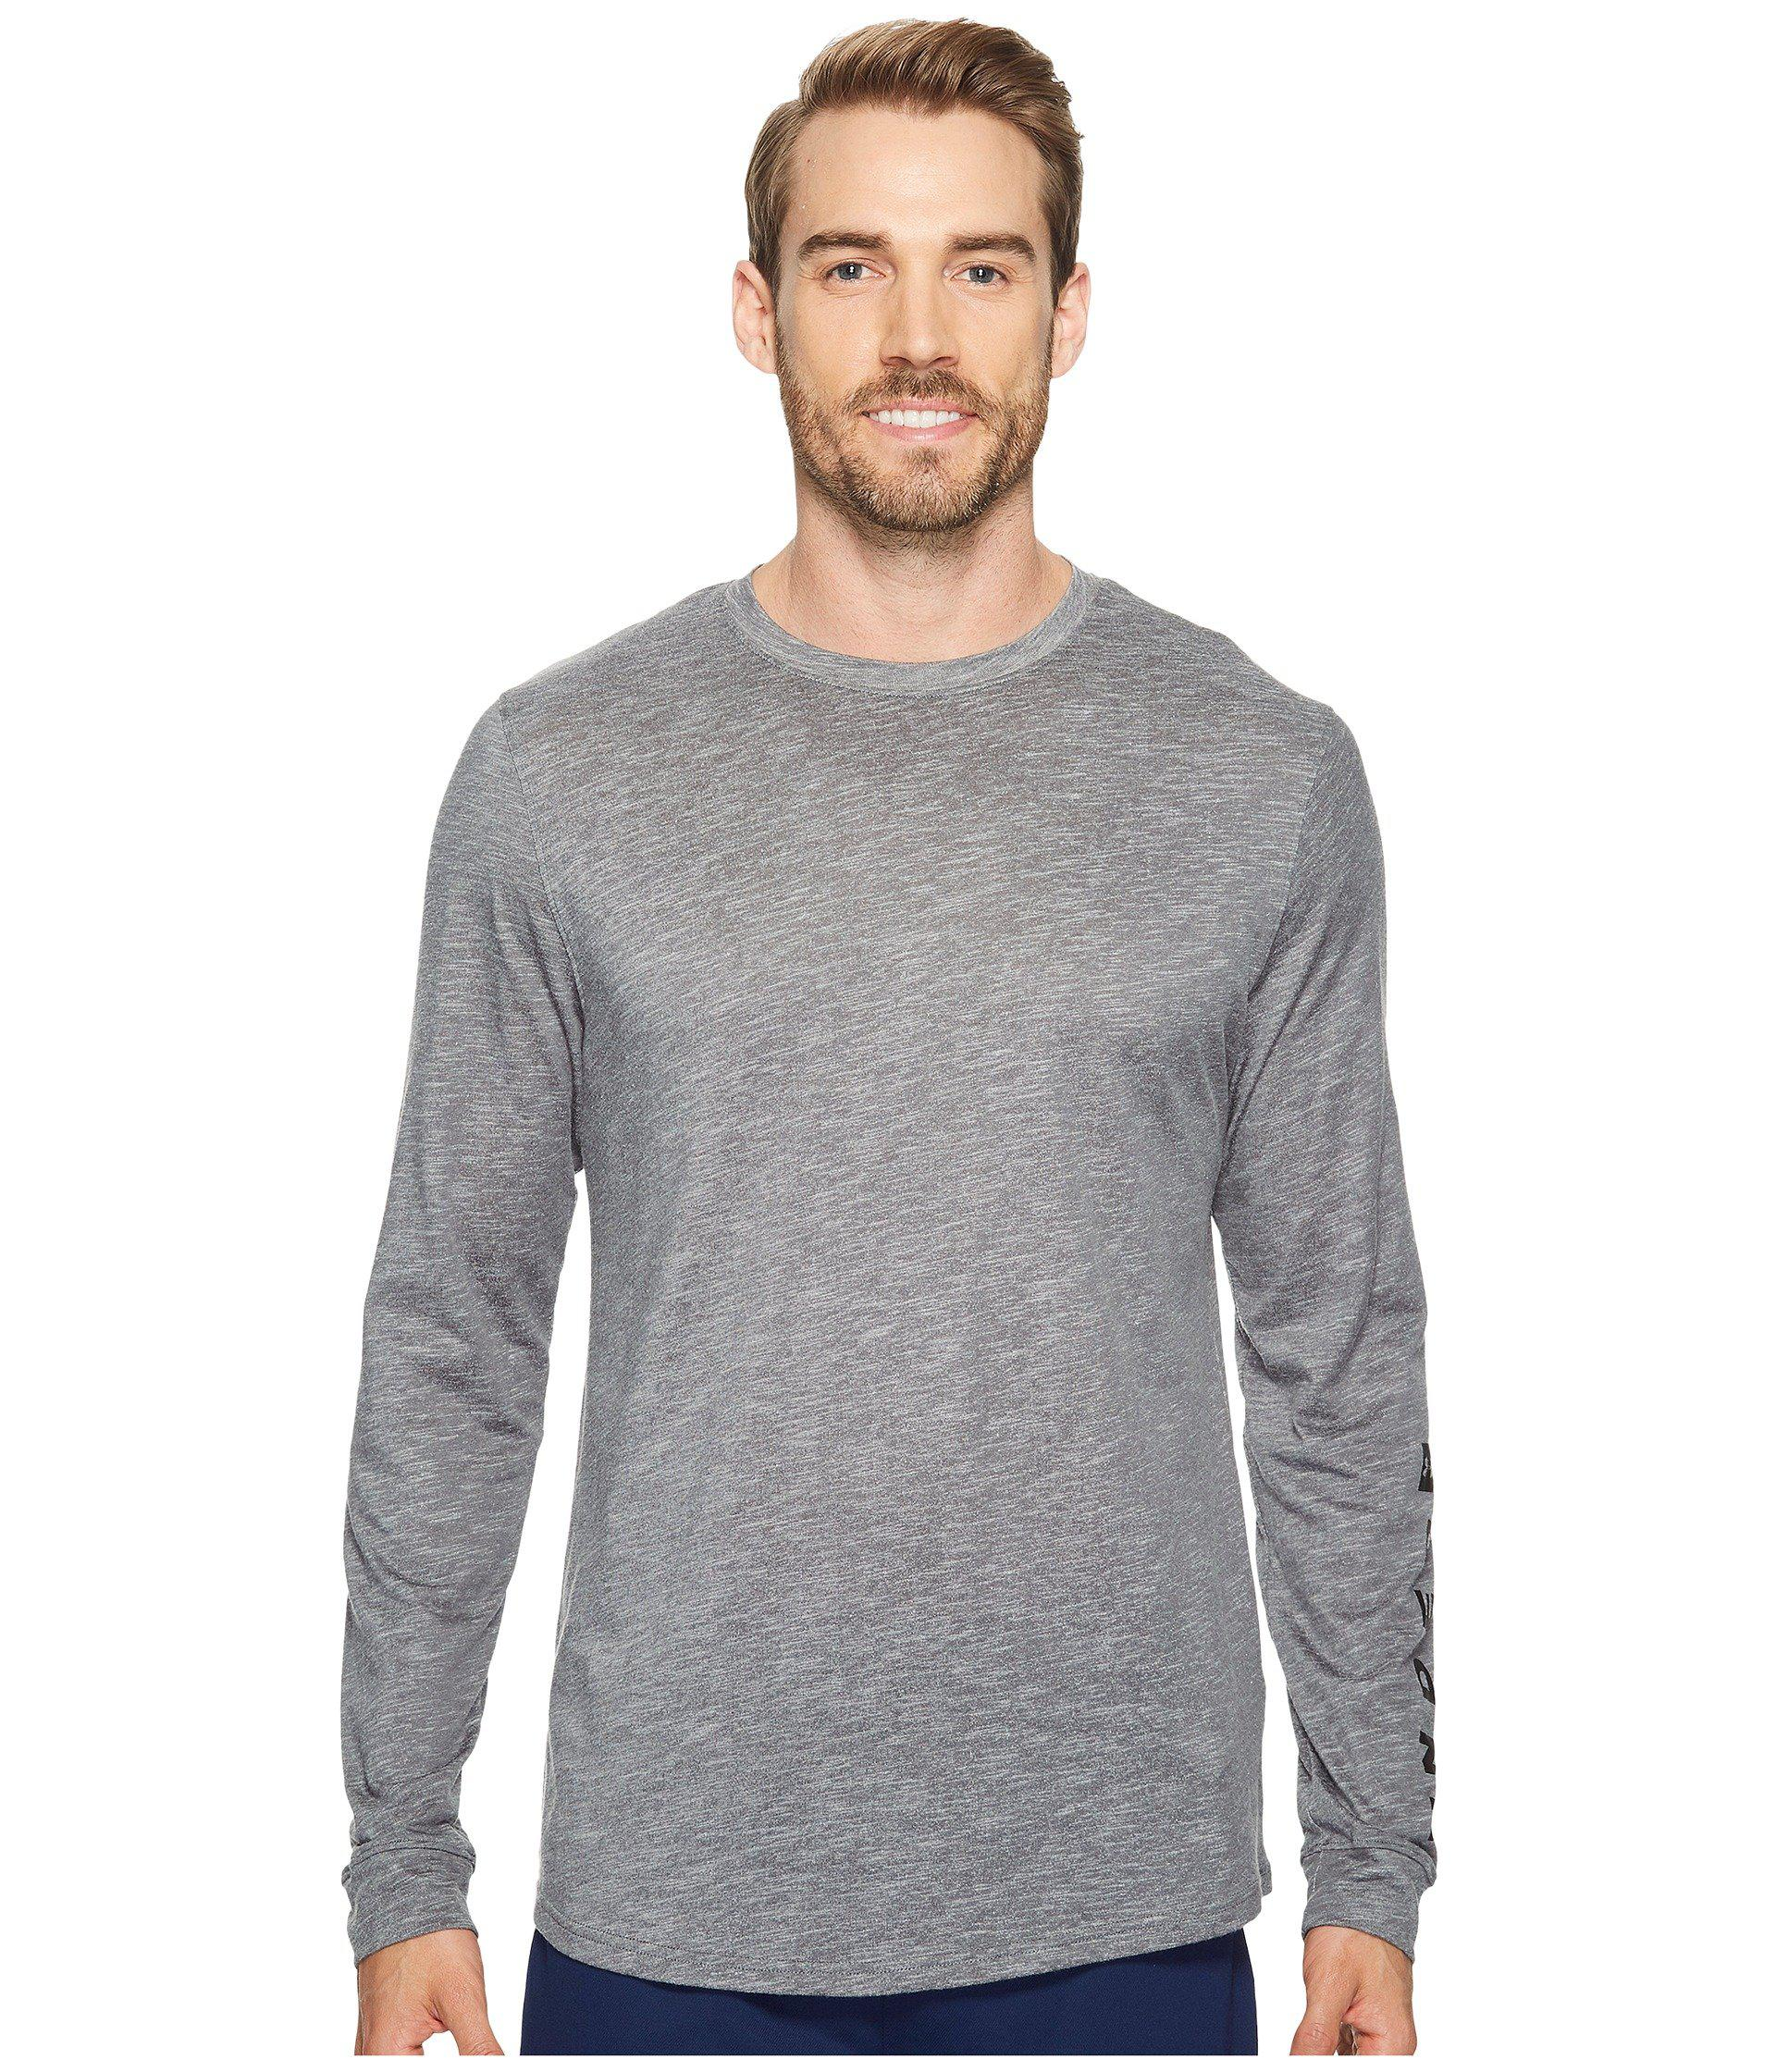 Under Armour. Men's Gray Sportstyle Long Sleeve Graphic Tee